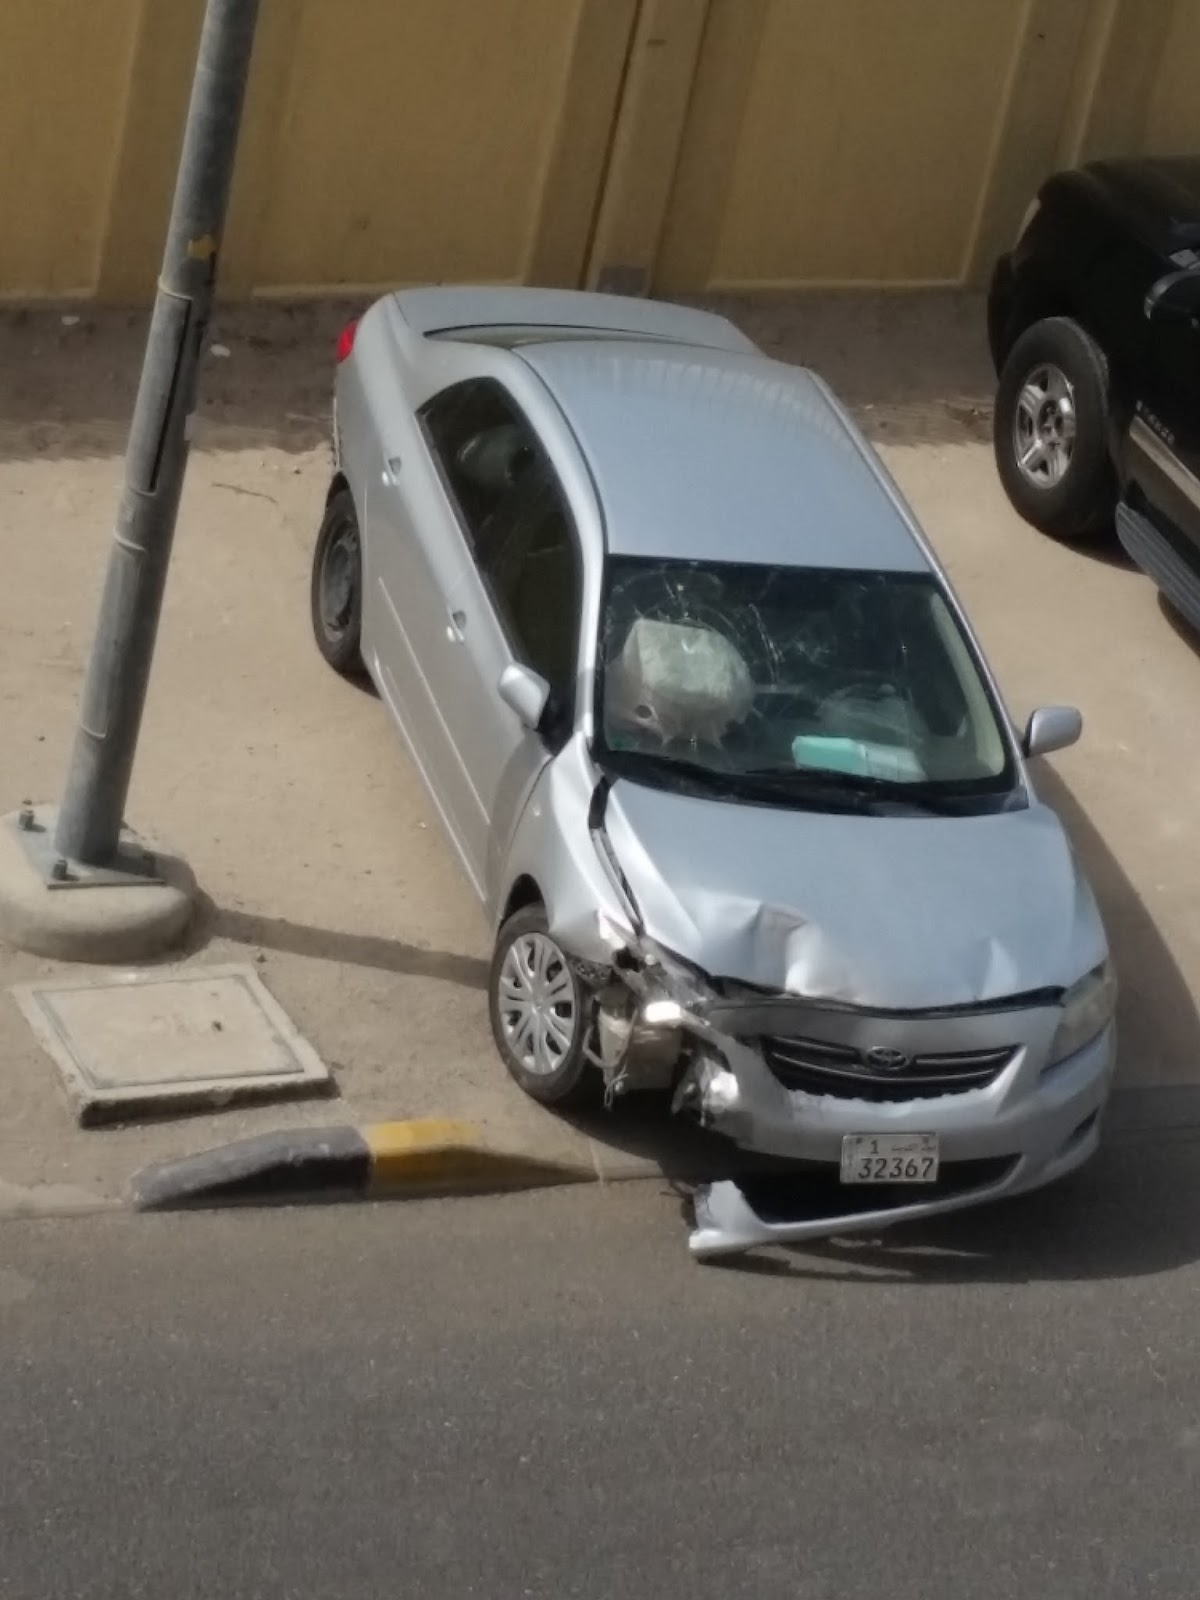 I've Had It Happen To Me Before, A Kuwaiti Lady Slammed Into My Car Pushing  It Into The Median And Tore It Up Once The Cops Came They Looked And  Yelled At